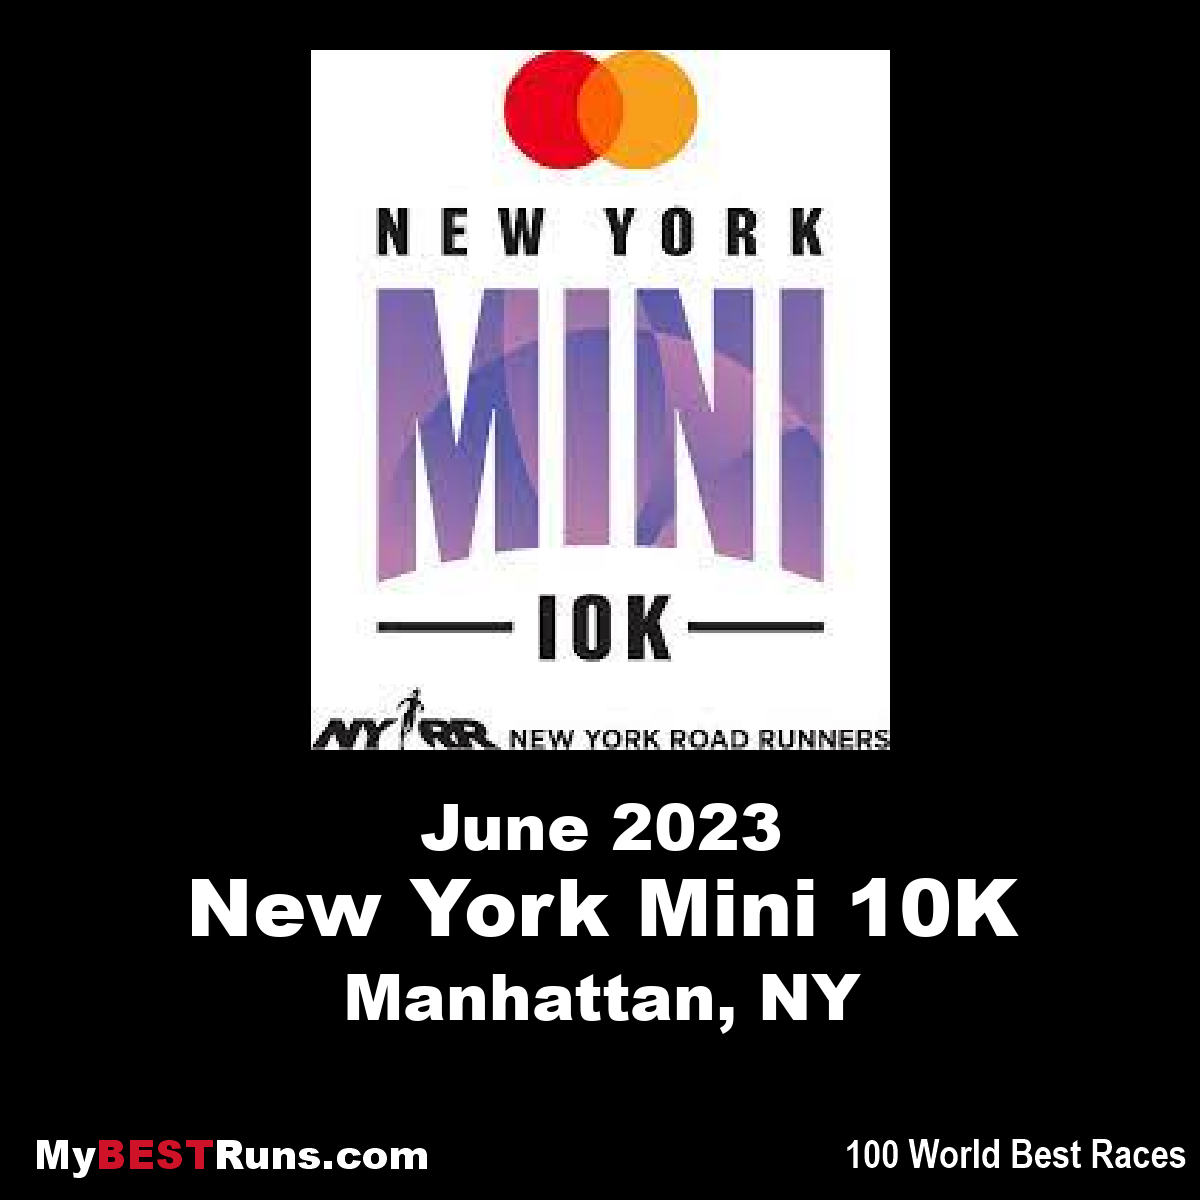 New York Mini 10K